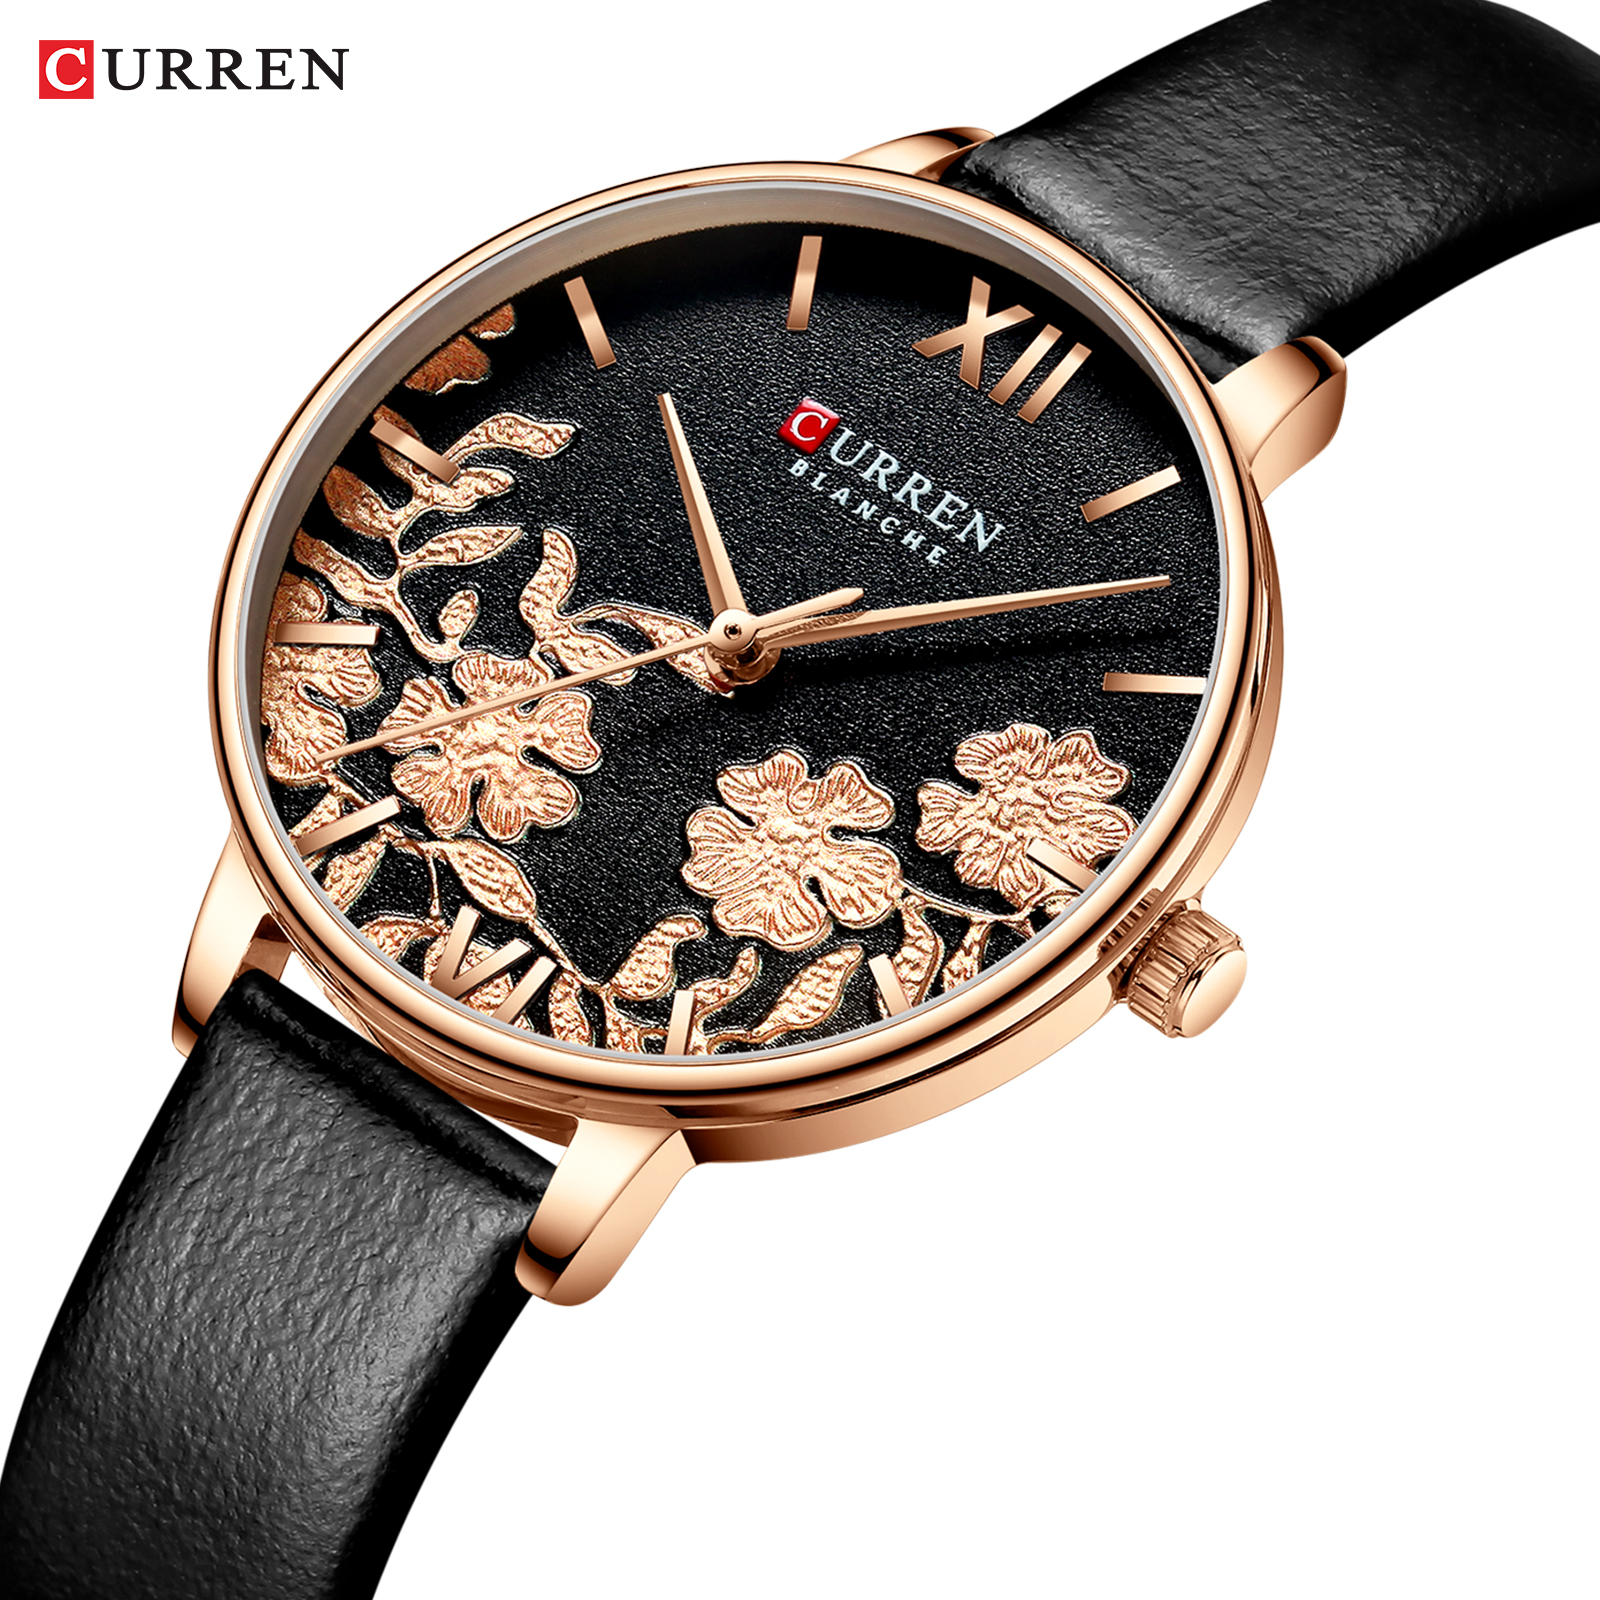 CURREN Leather Women Watches 2019 Beautiful Unique Design Dial Quartz Wristwatch Clock Female Fashion Dress Watch Montre Femme